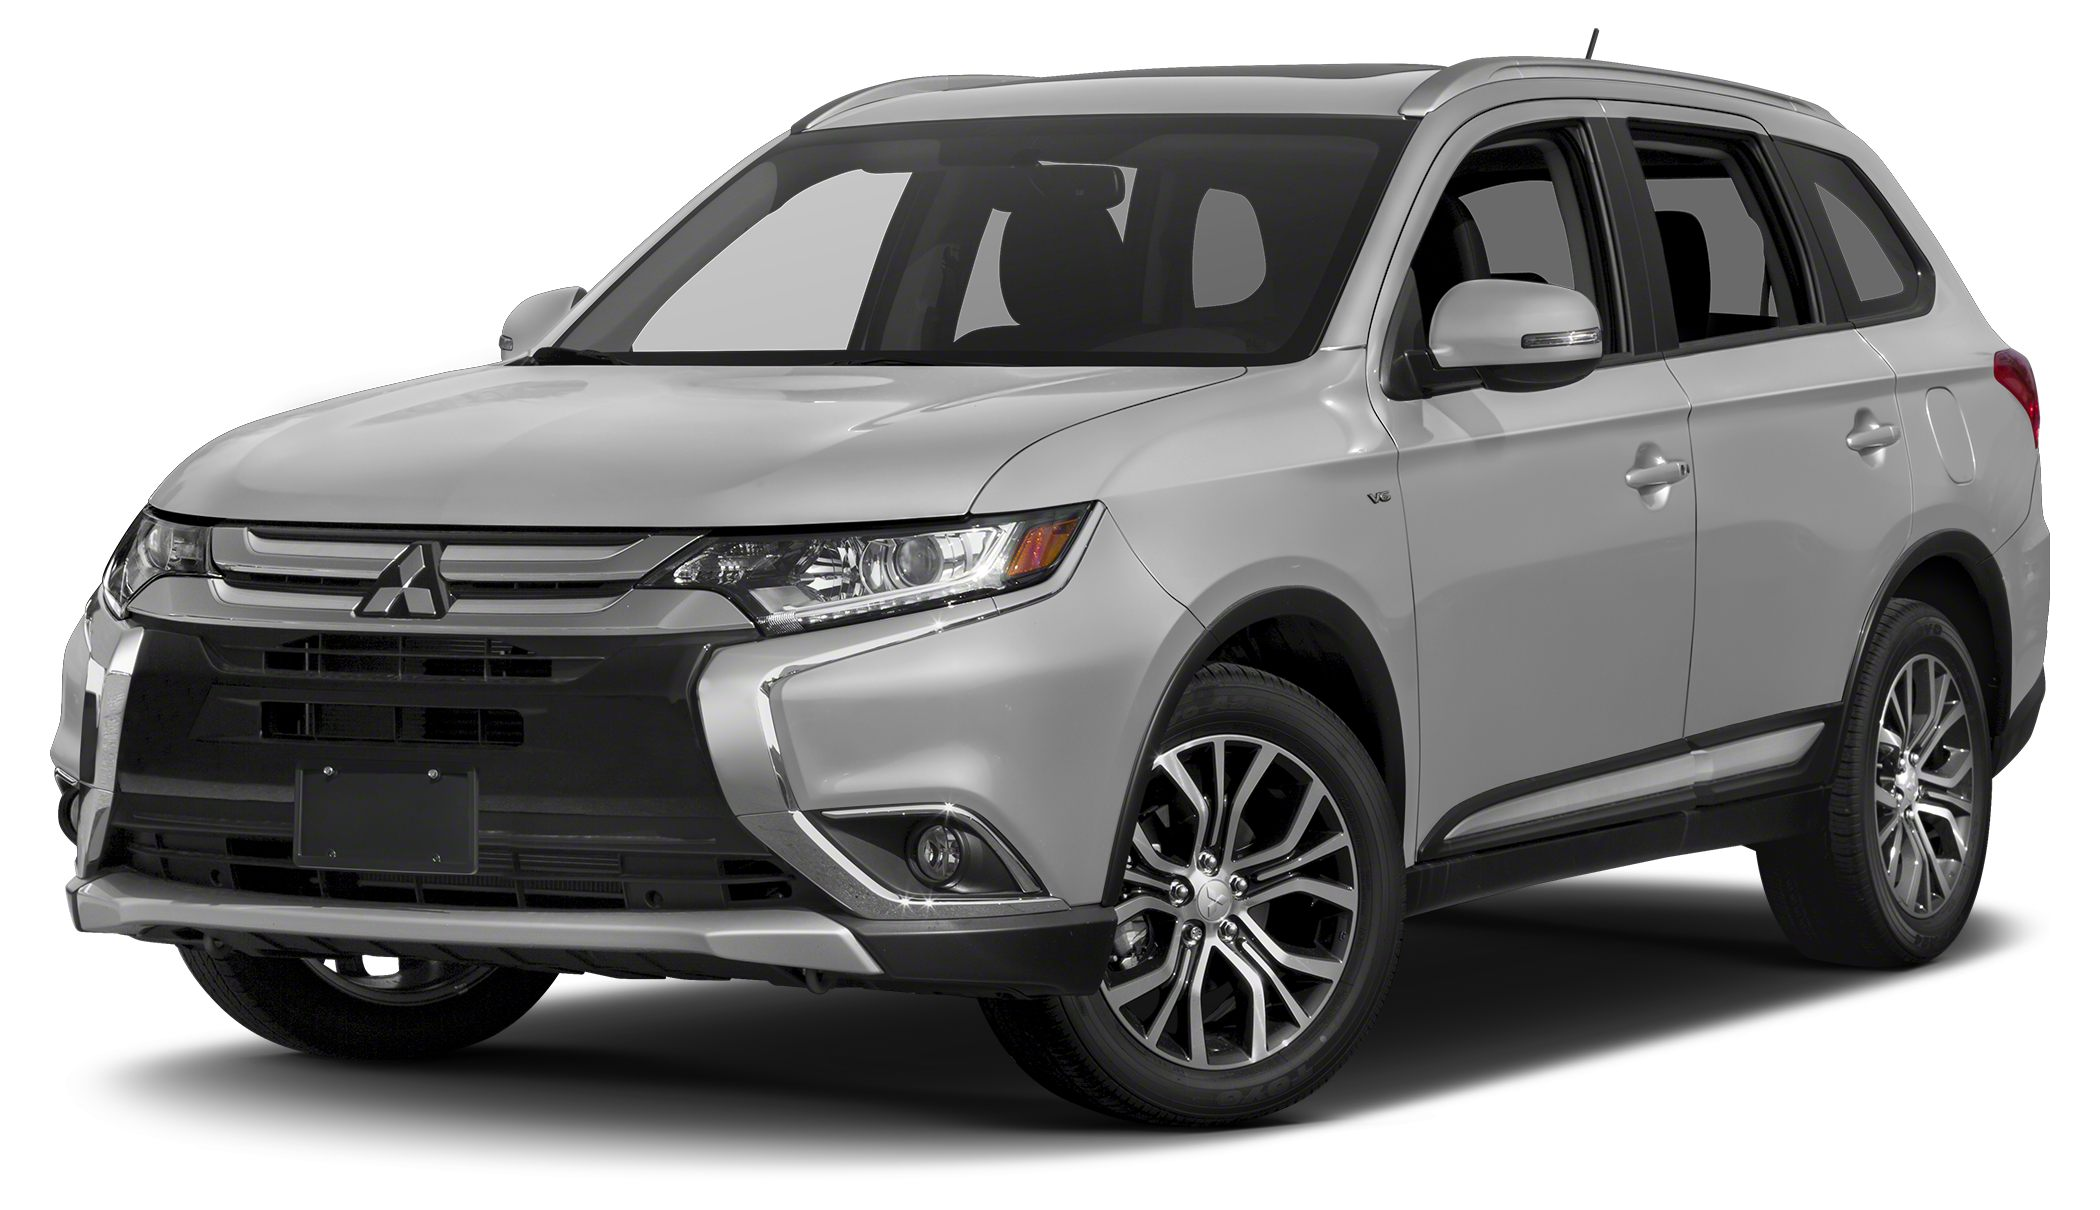 2017 Mitsubishi Outlander SE The Mitsubishi Outlander with a tough upper front grille in a new li